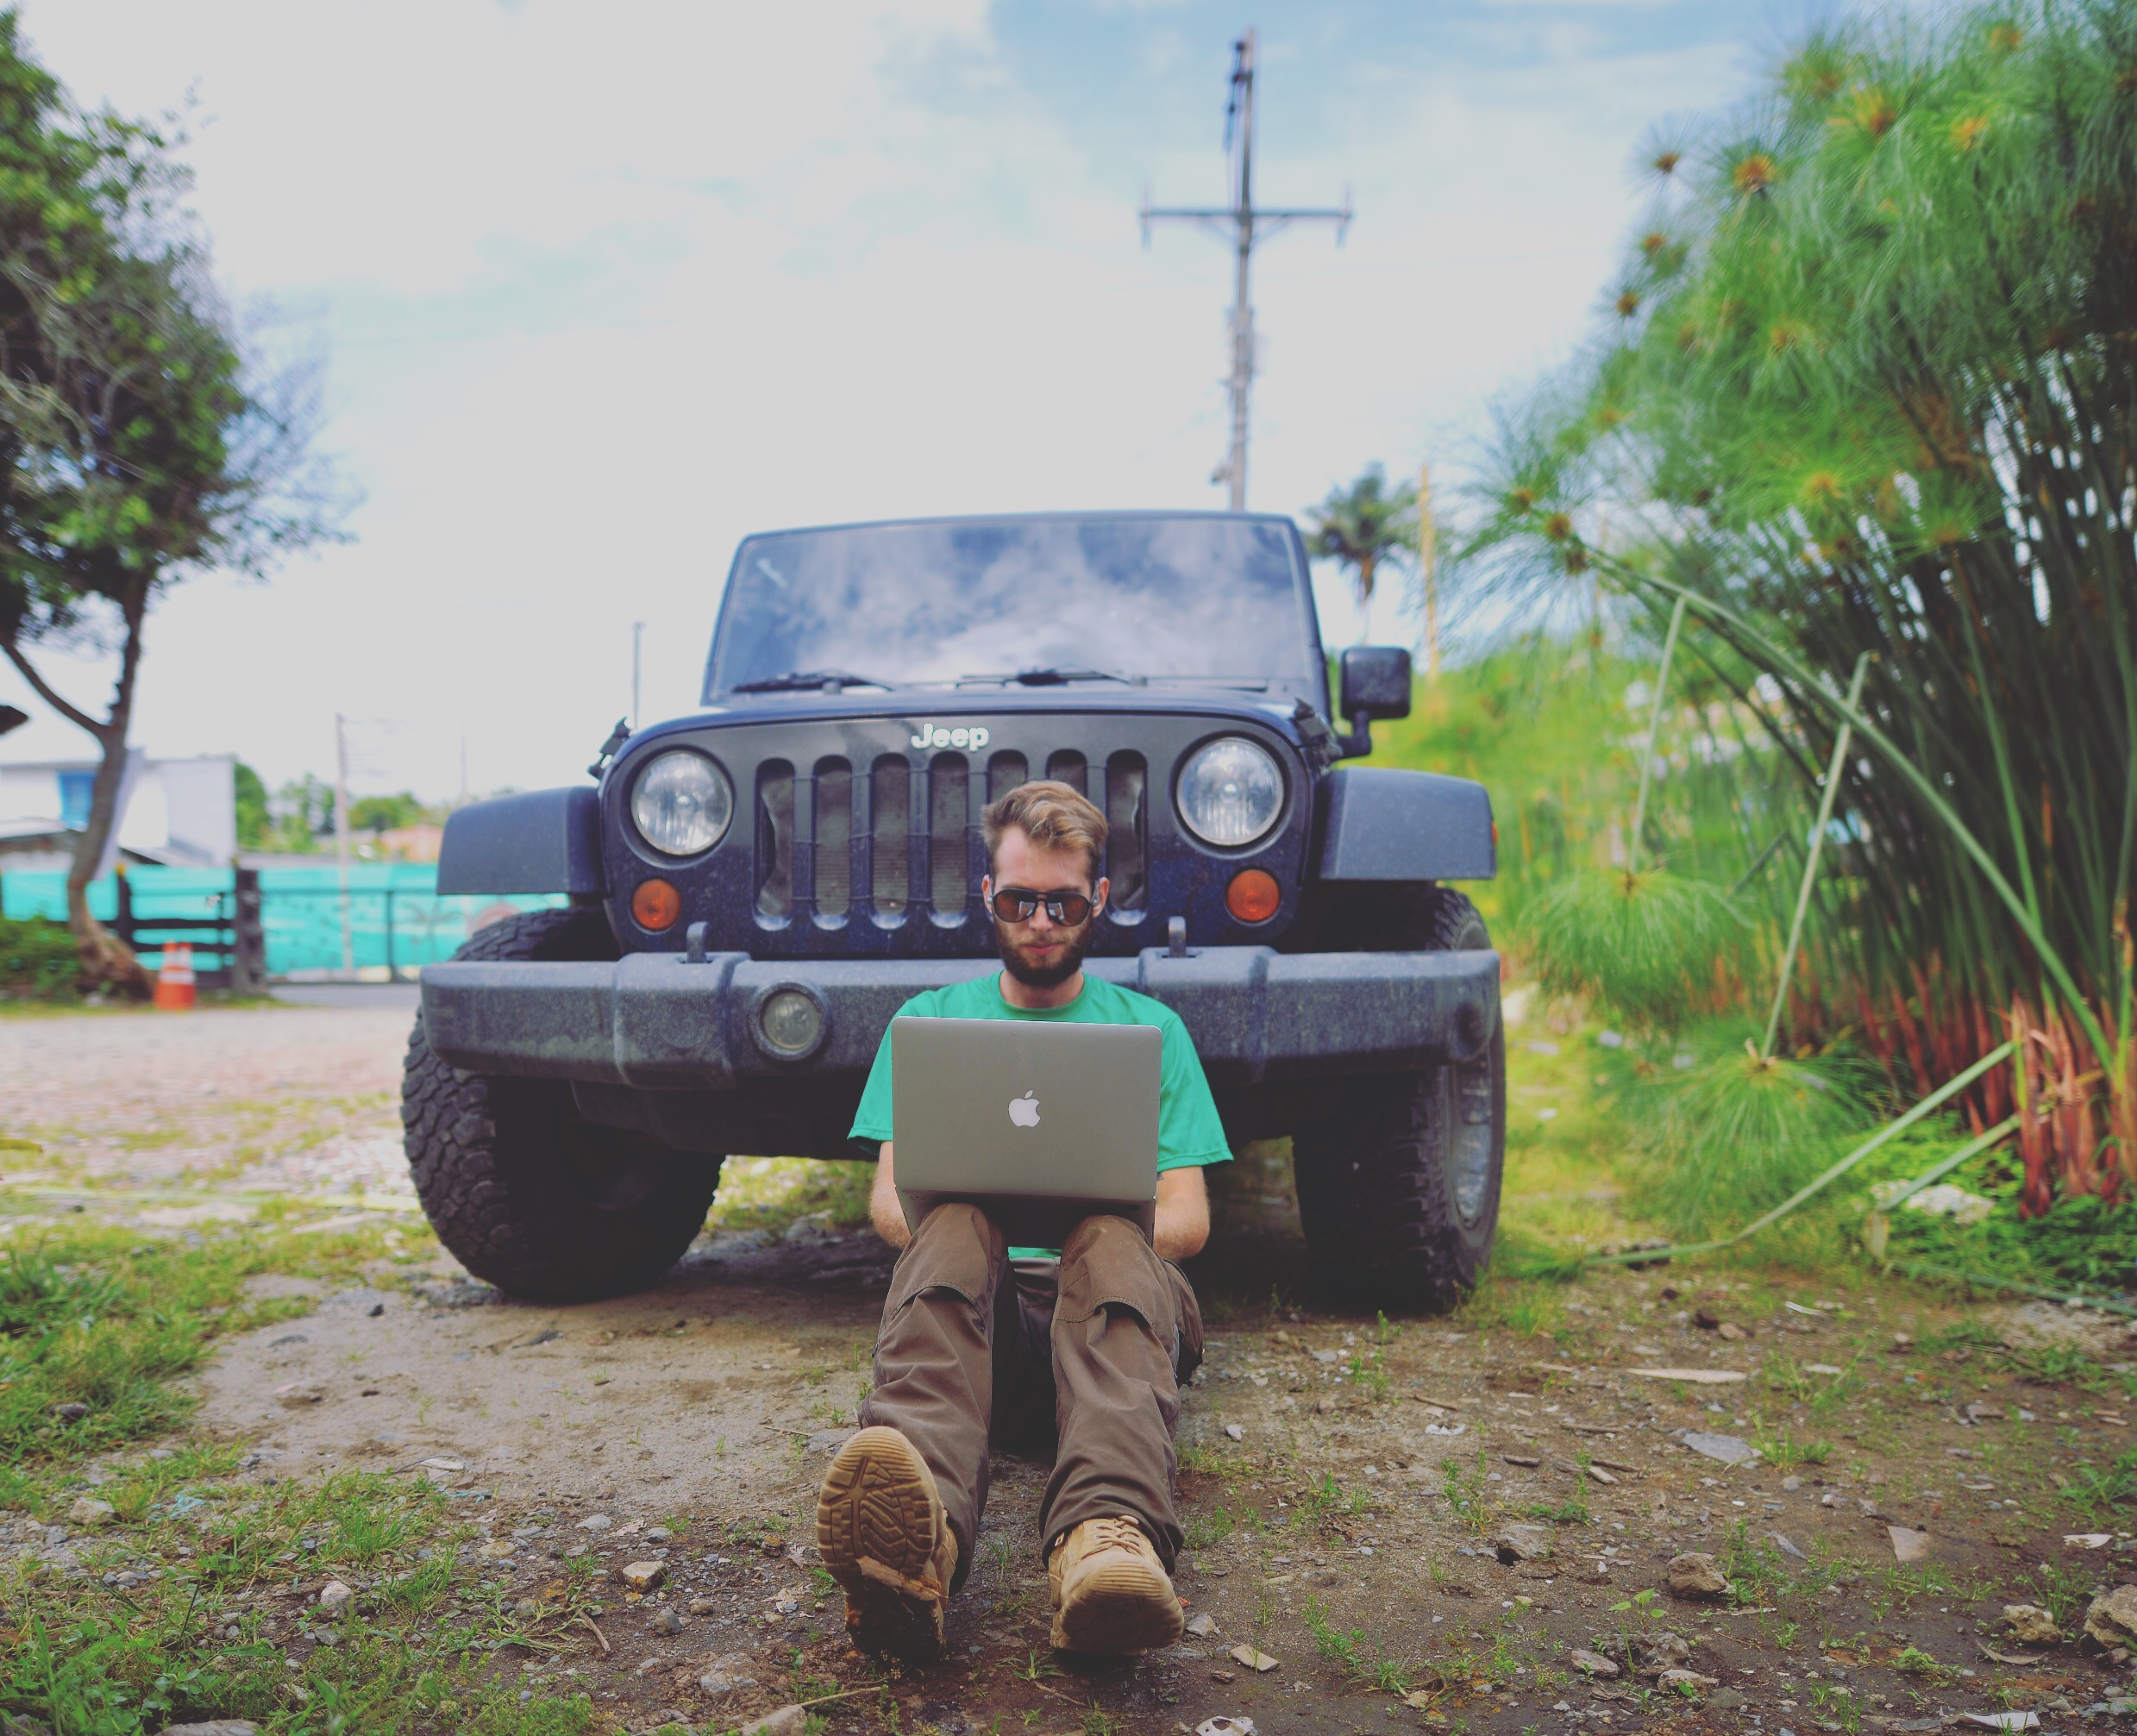 Me in Colombia, learning how to code.